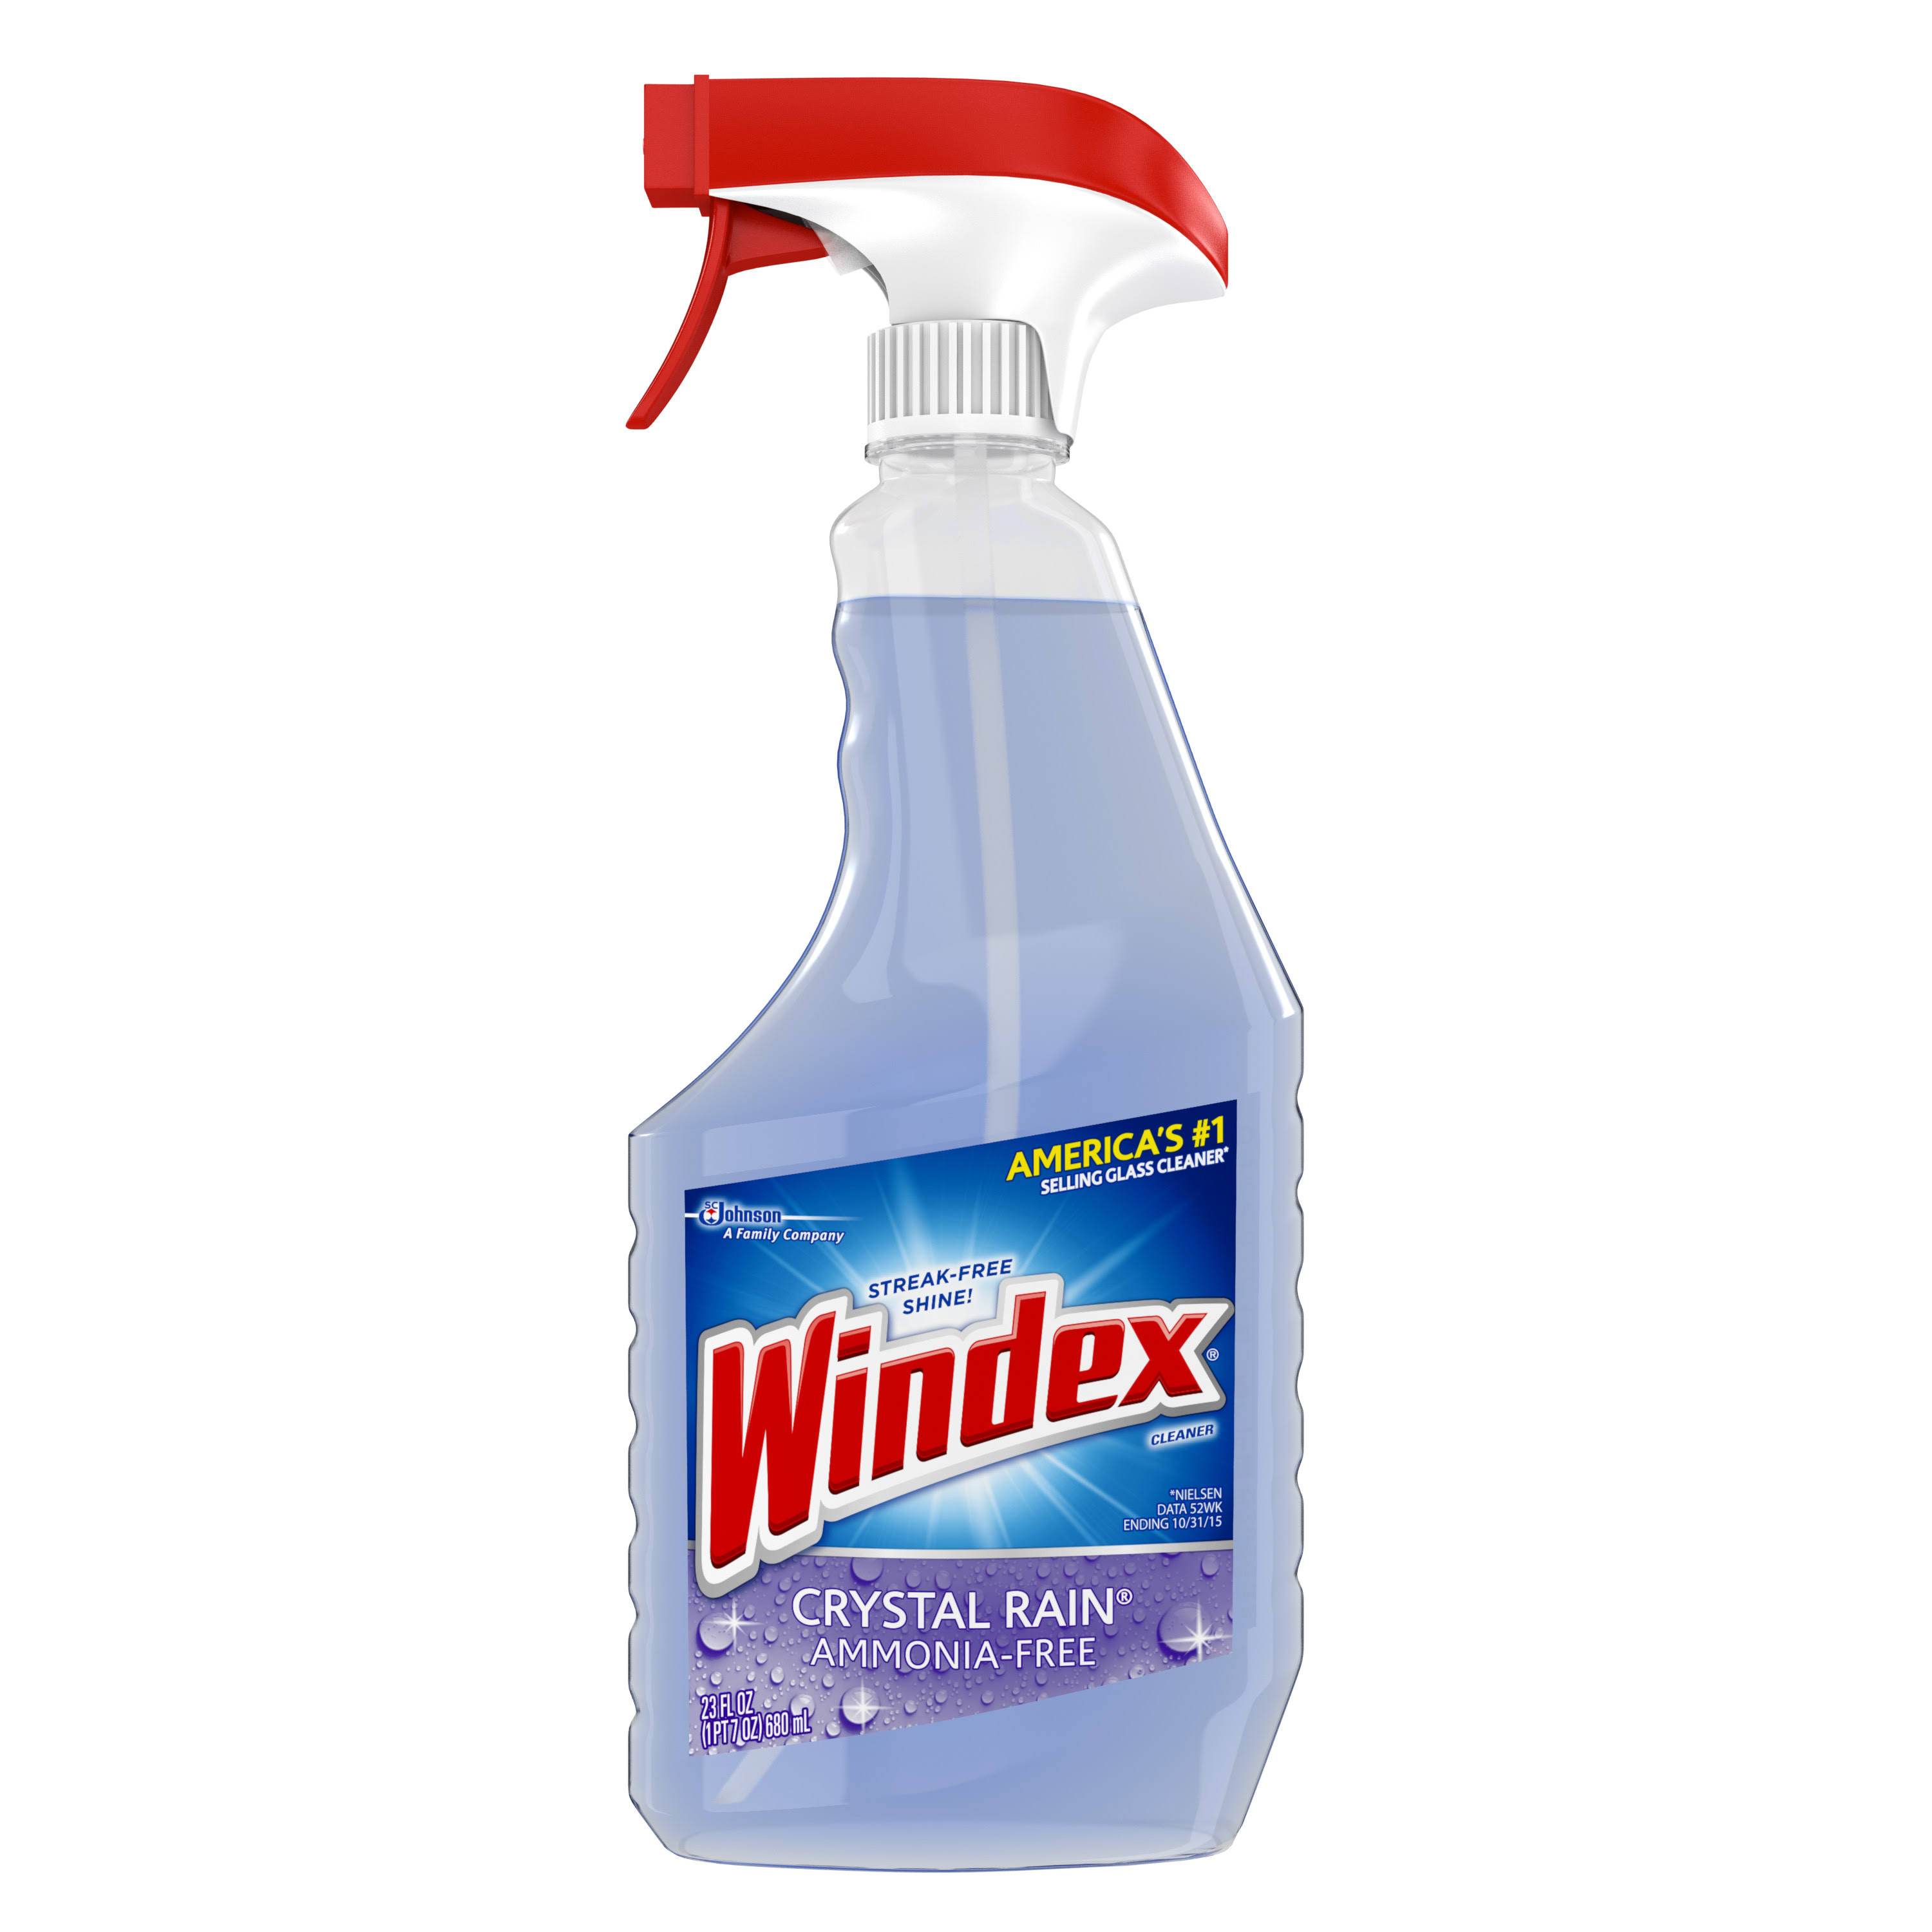 Windex Crystal Rain Glass Cleaner - 23oz